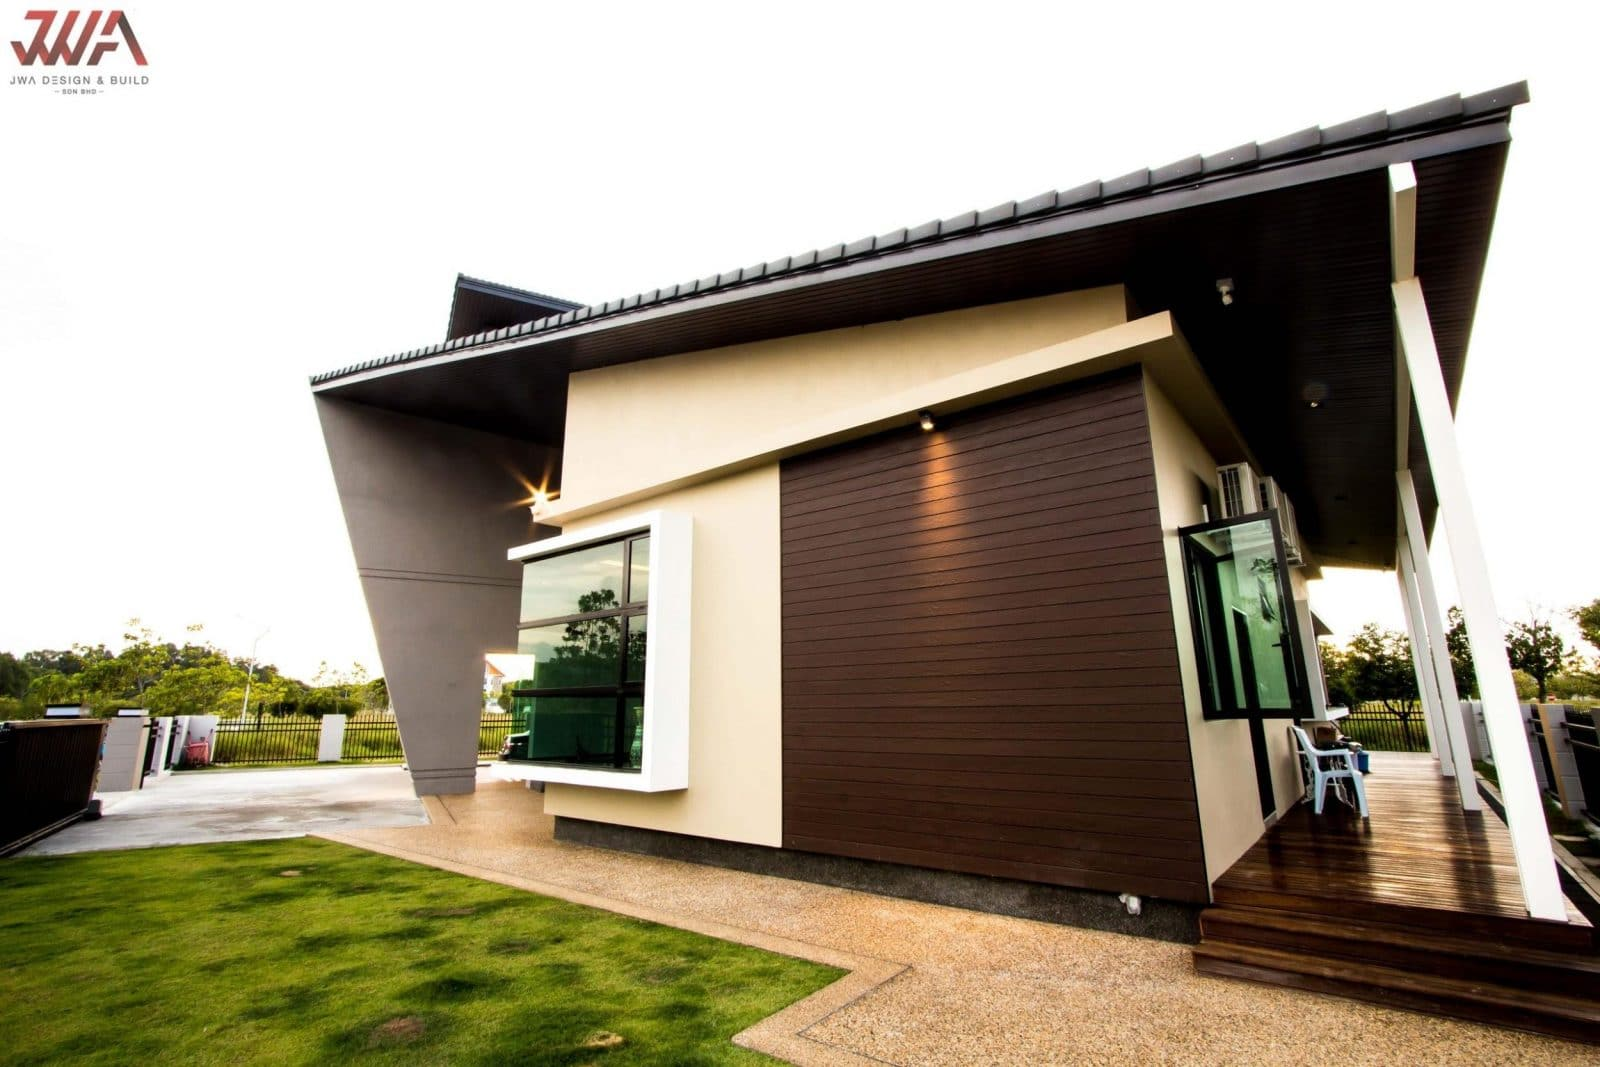 Bungalow exterior design by JWA Design and Build